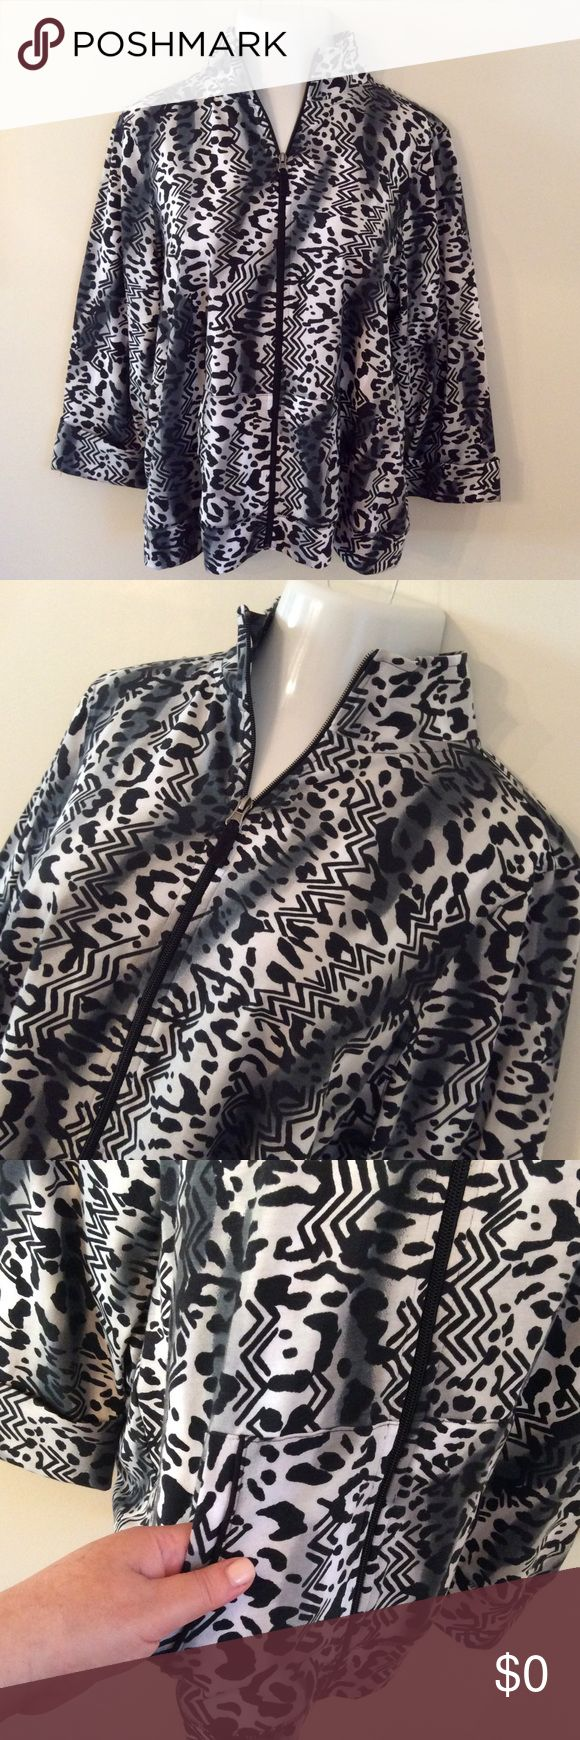 | casual TRIBAL animal print zip up jacket | In New Condition!  Stylish Animal Print, Zip up Jacket. Front Pockets and Mock Neck. Long Sleeves. Material is 57% Cotton, 38% Polyester and 5% Spandex. Kim Rogers Jackets & Coats